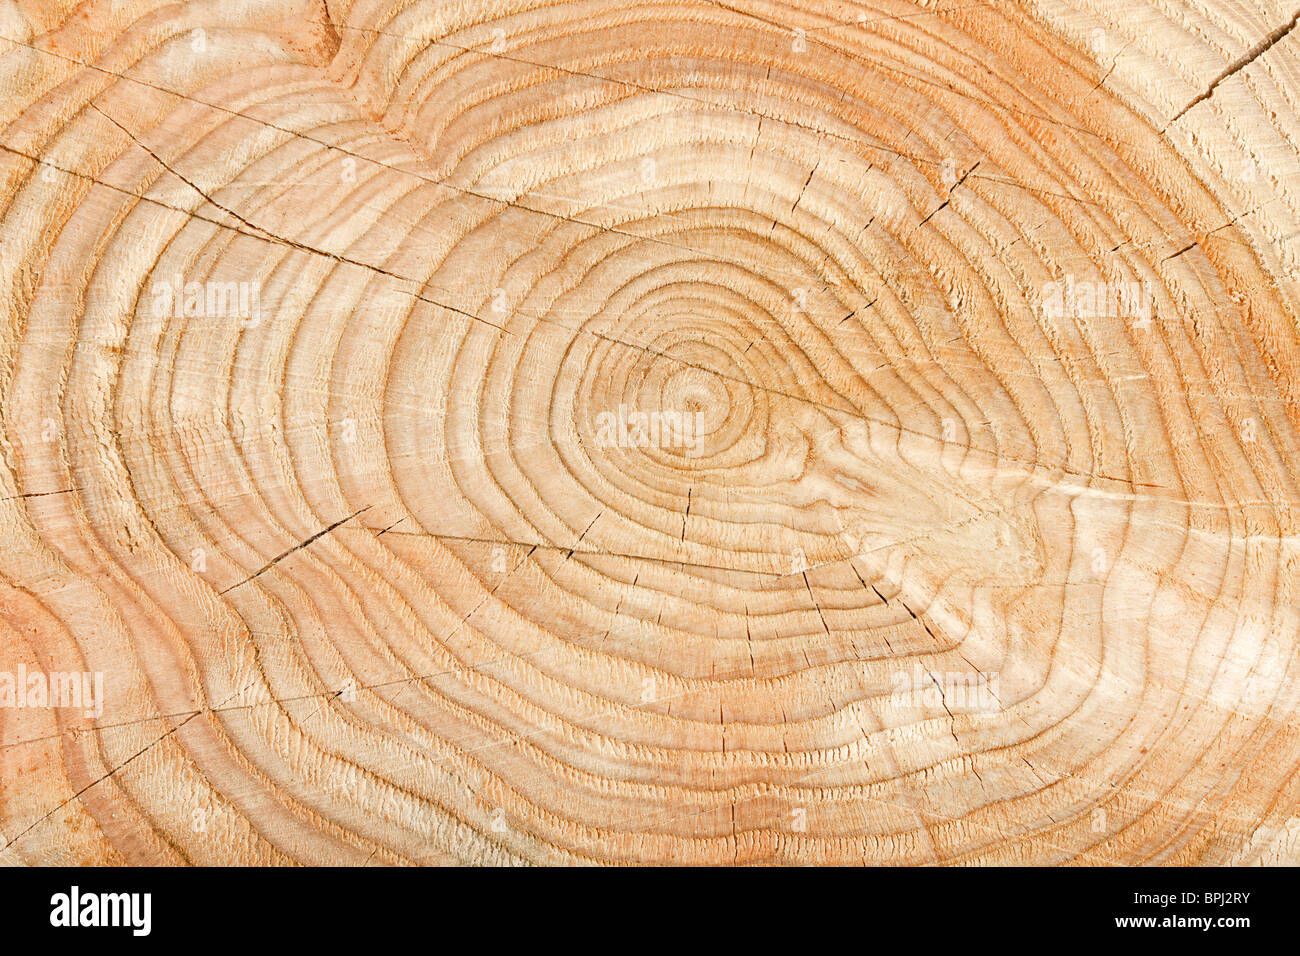 Close-up of a cross section of a tree stump showing aging circles - Stock Image